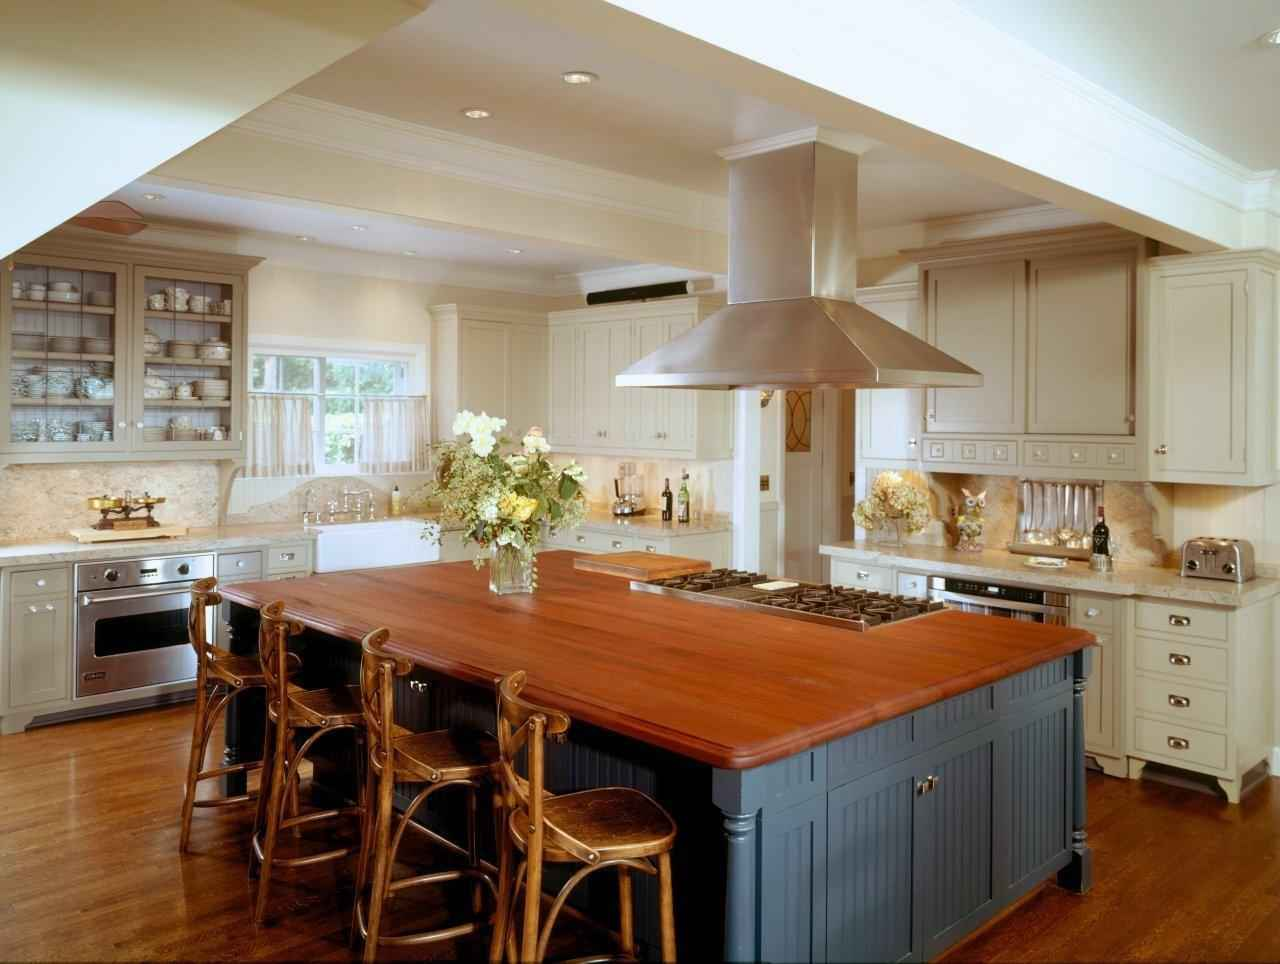 Cheap countertop ideas for your kitchen - Kitchen counter decoration ...